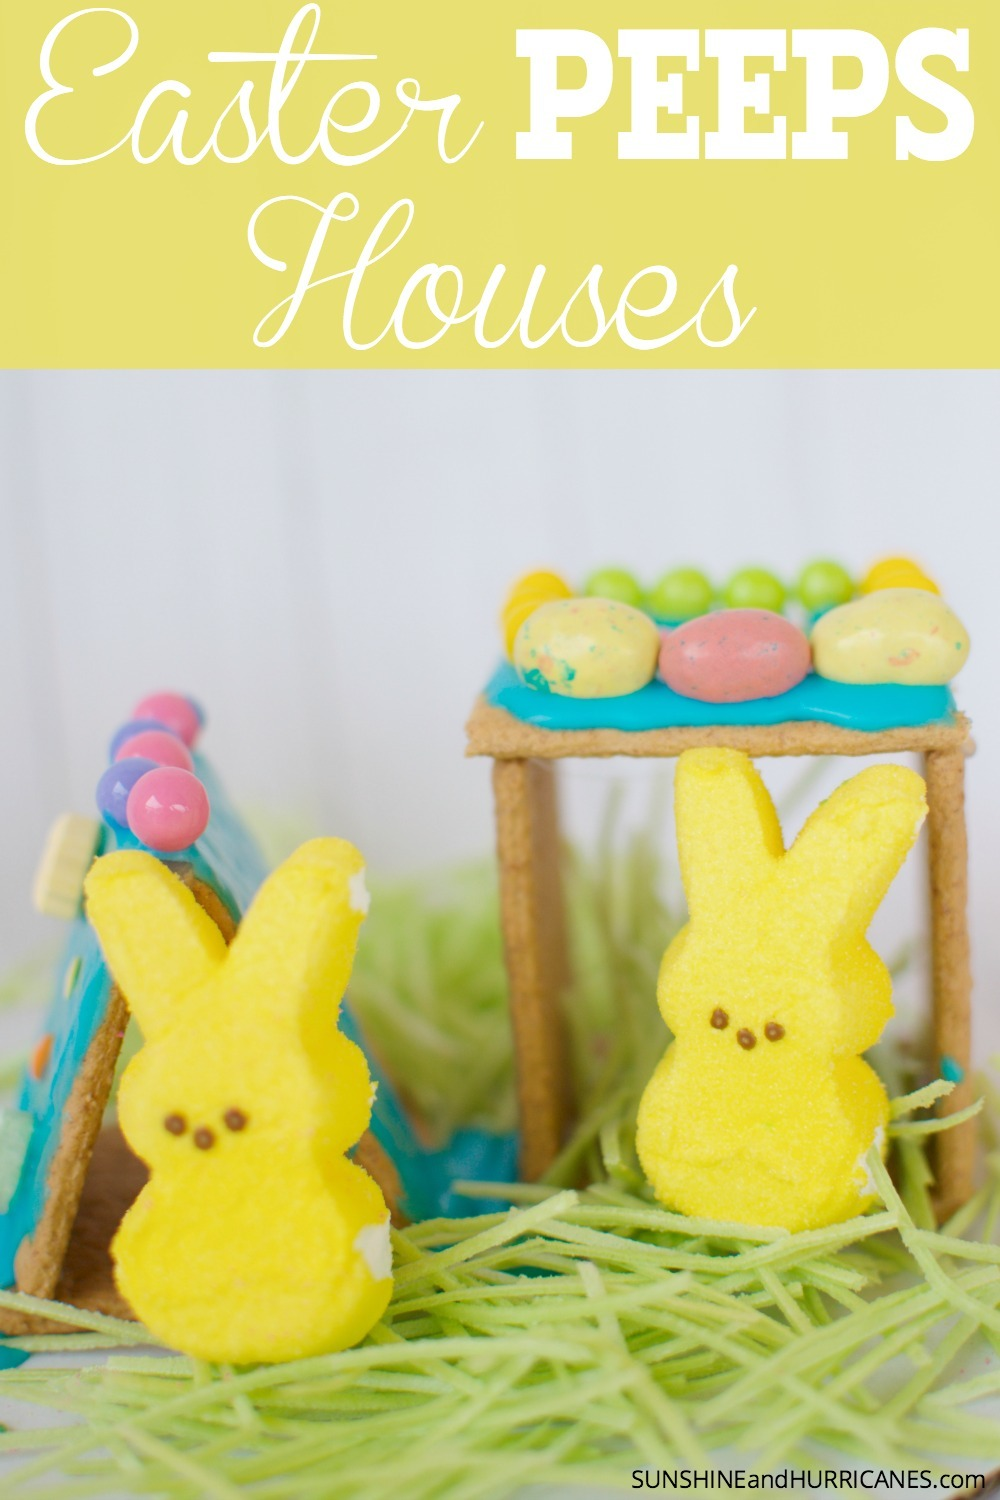 Looking for a fun Easter activity for kids? Here's a great way to put some of that Easter candy to use without it actually having to be eaten. Create little houses for those adorable PEEPS out of graham cracker and other Easter materials. Easter Peeps Houses. SunshineandHurricanes.com